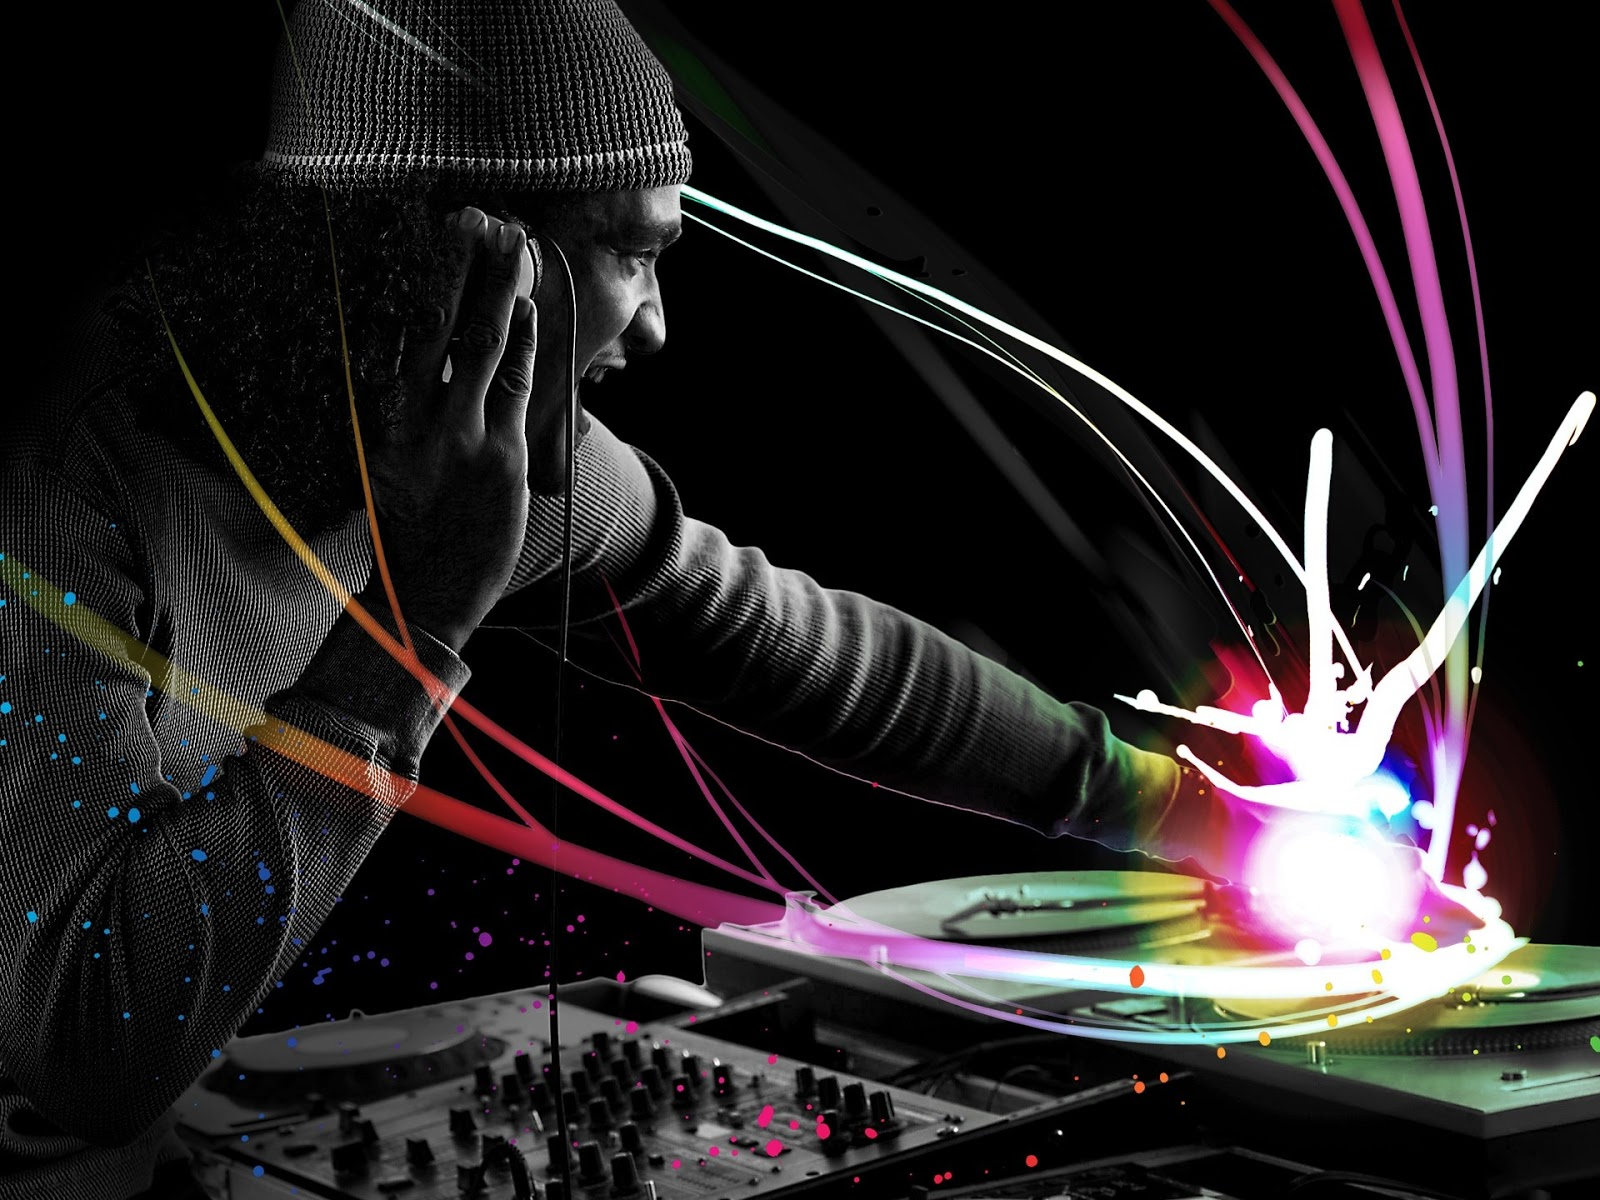 HD Wallpapers Fine: musical instruments sounds DJ HQ HD ...